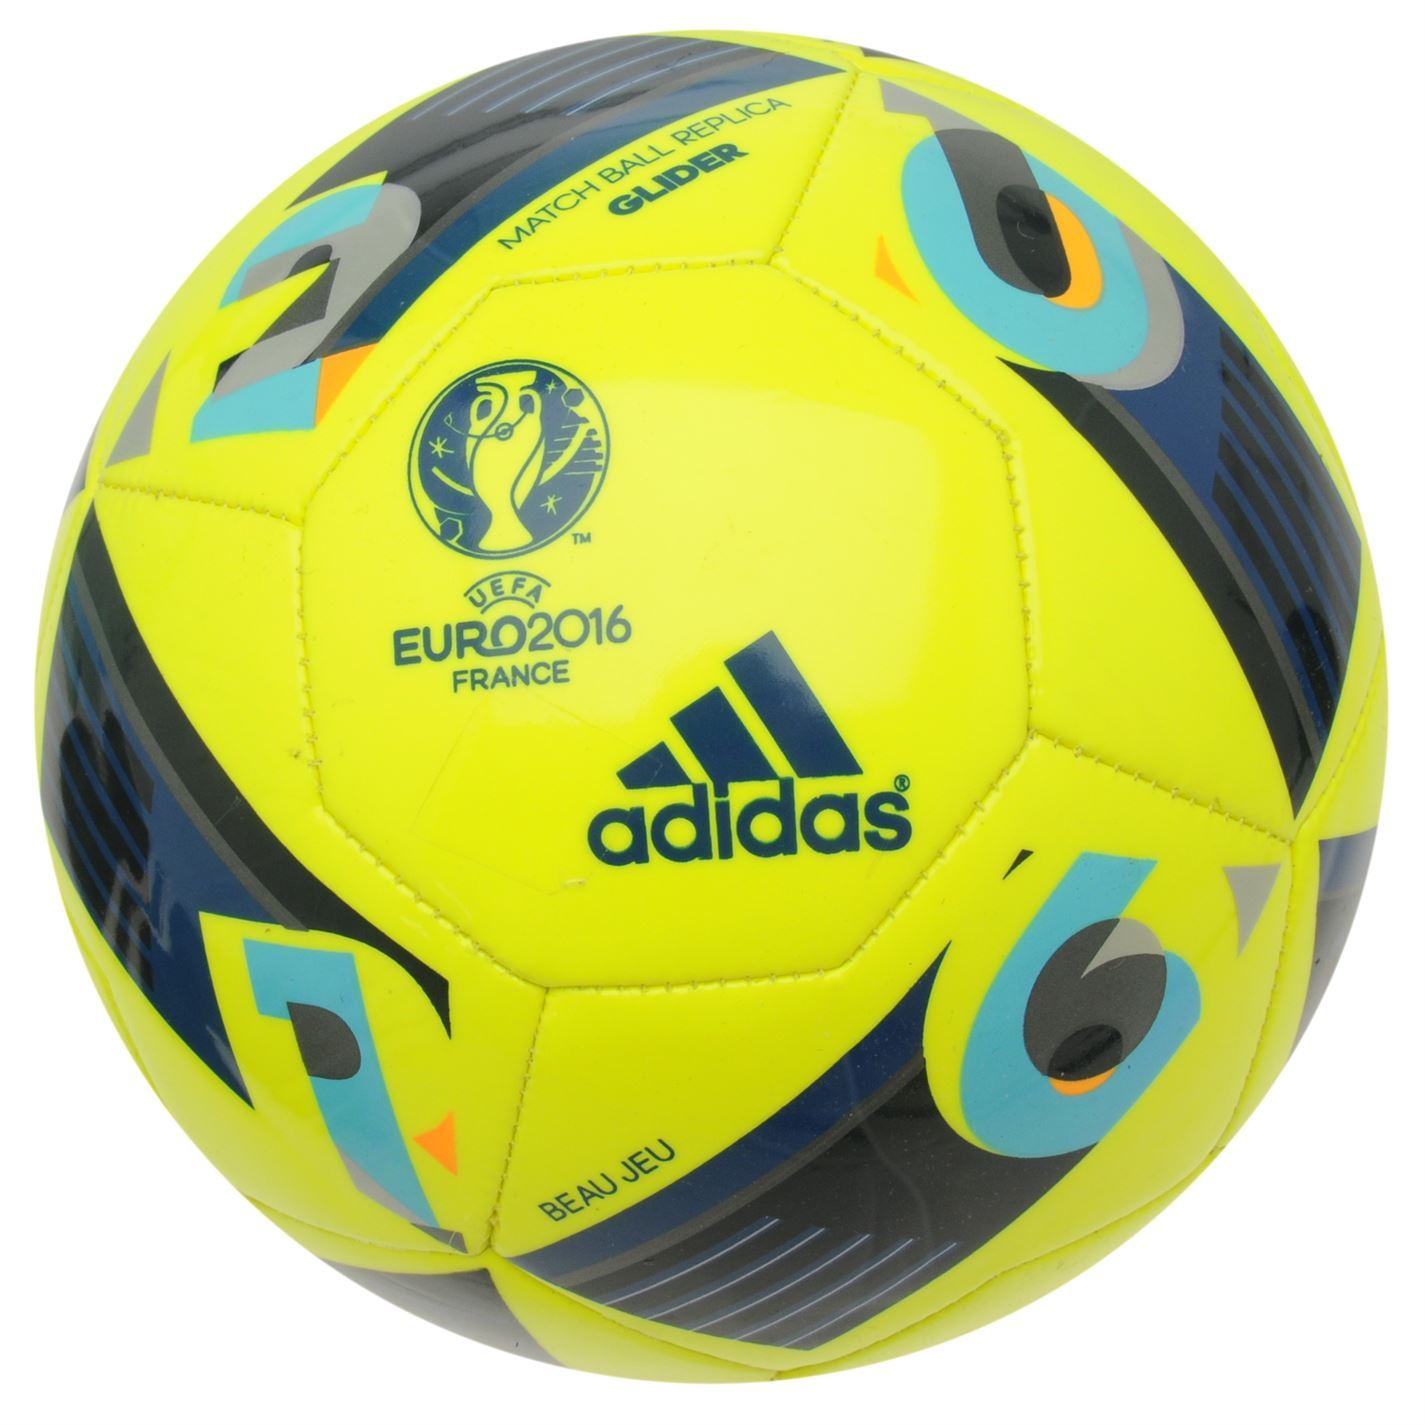 Adidas Euro 2016 Match Ball Glider Football Solar Yellow Soccer Ball ... ce4d76d20d69e